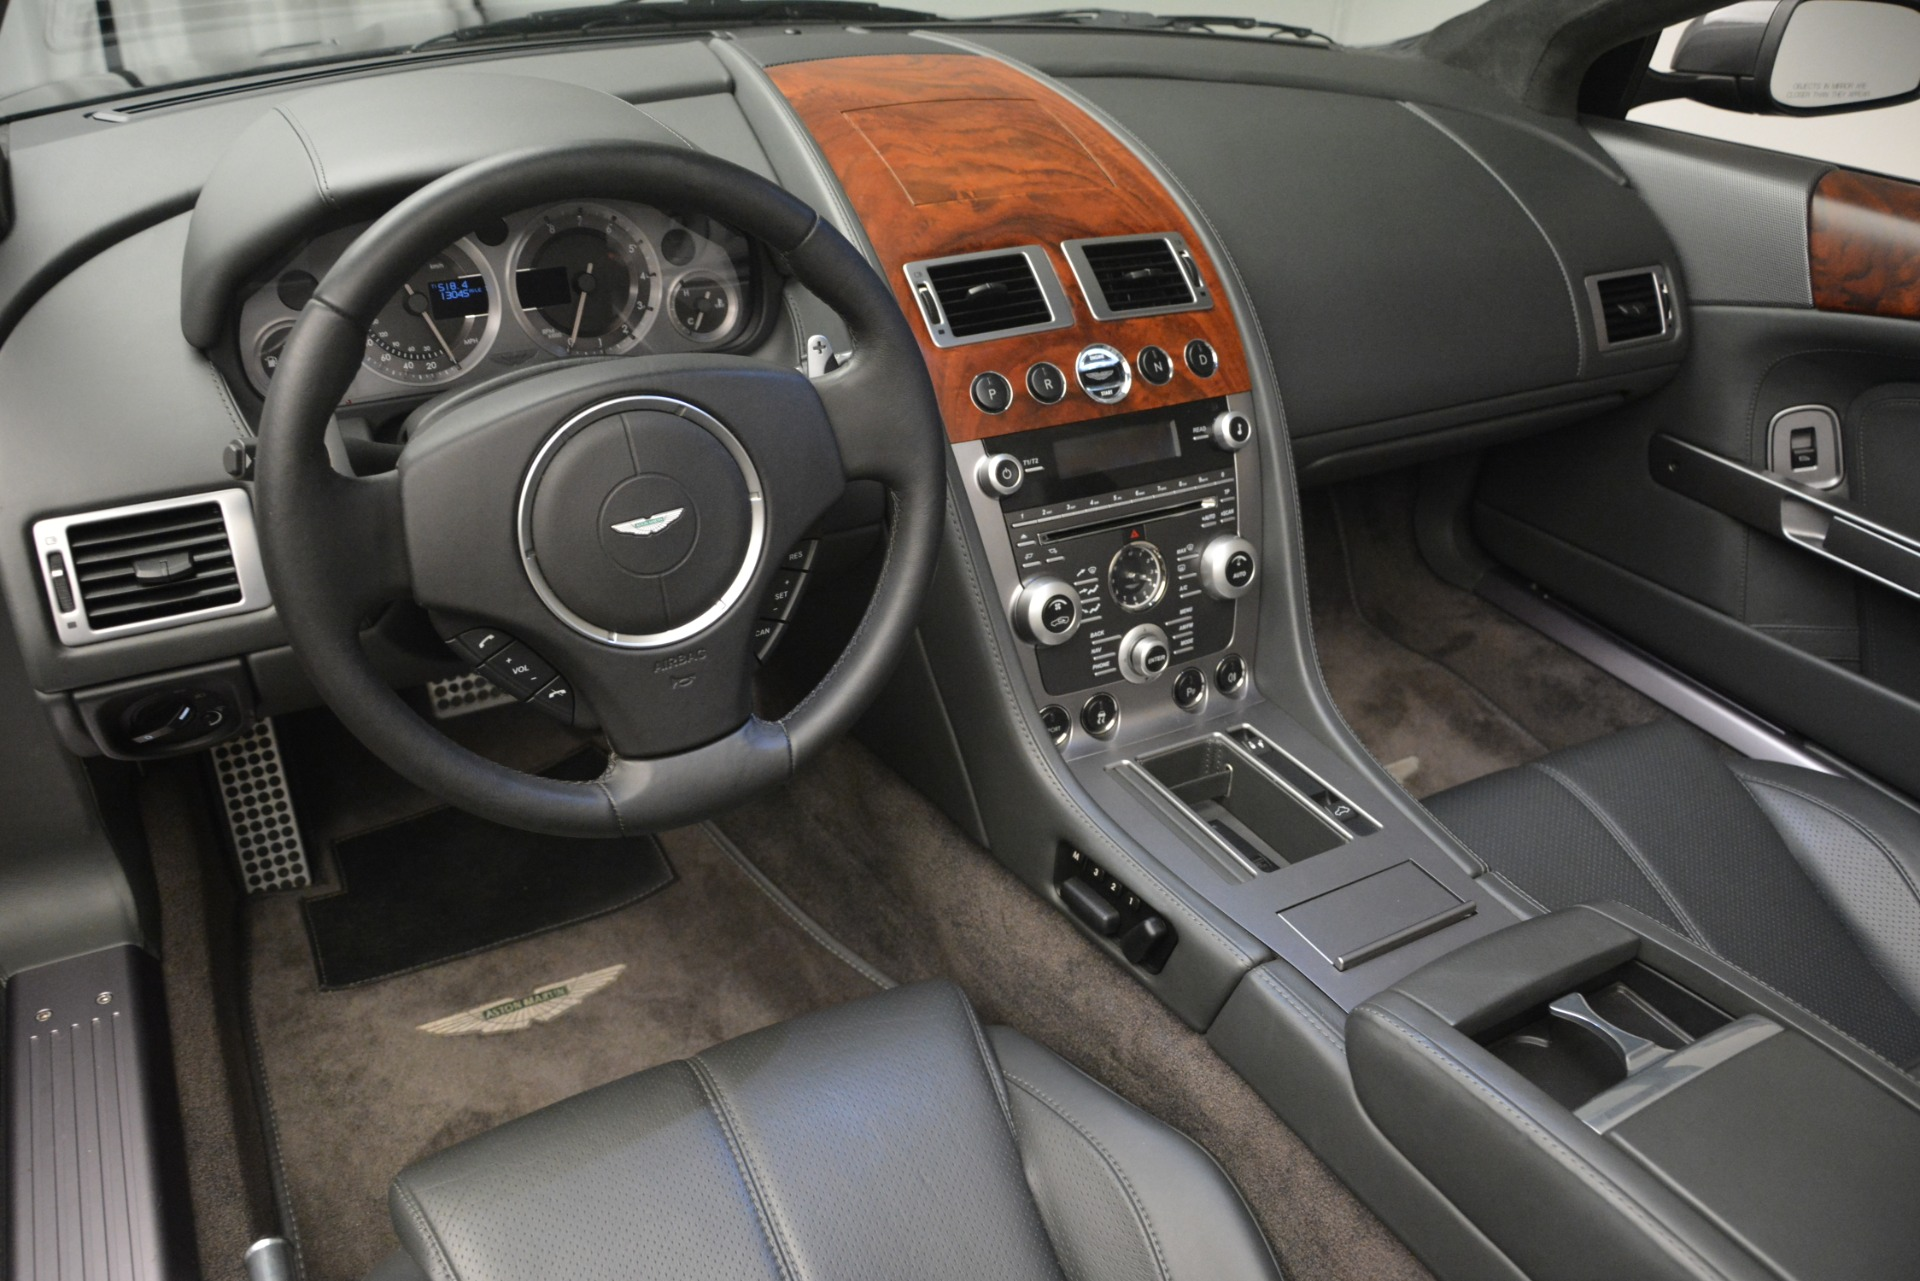 Used 2009 Aston Martin DB9 Convertible For Sale In Westport, CT 2930_p21